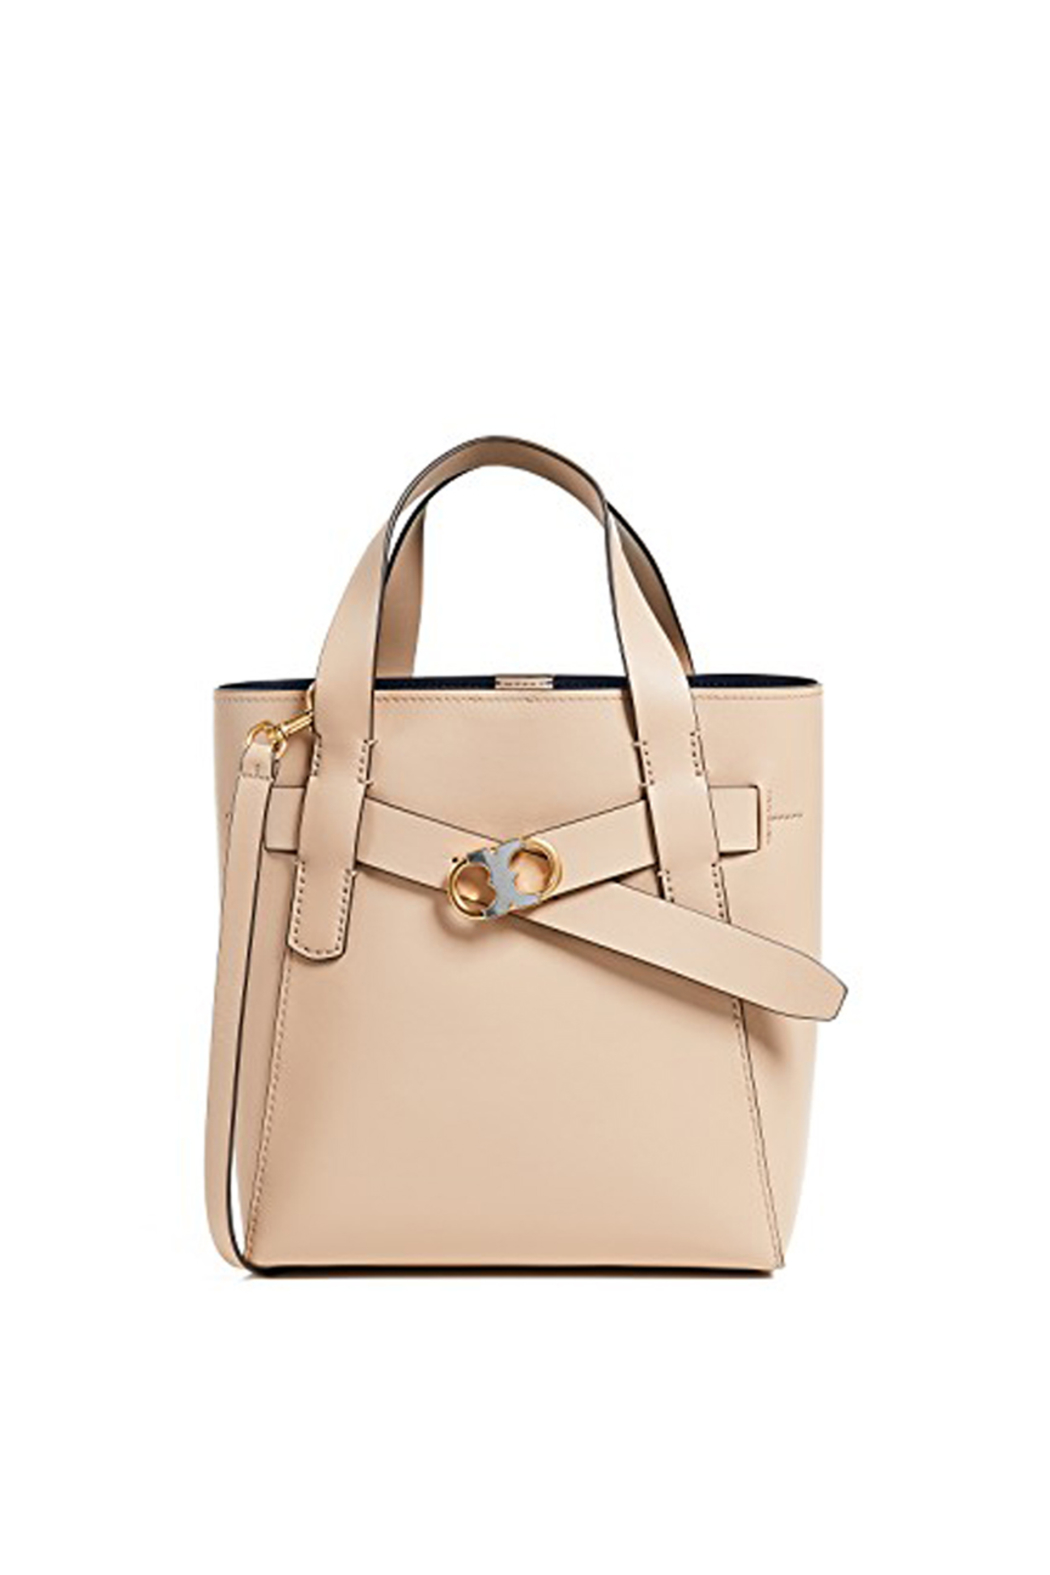 38b4b5acfec Tory Burch Gemini Link Leather Small Tote from Lafayette by Kiki ...